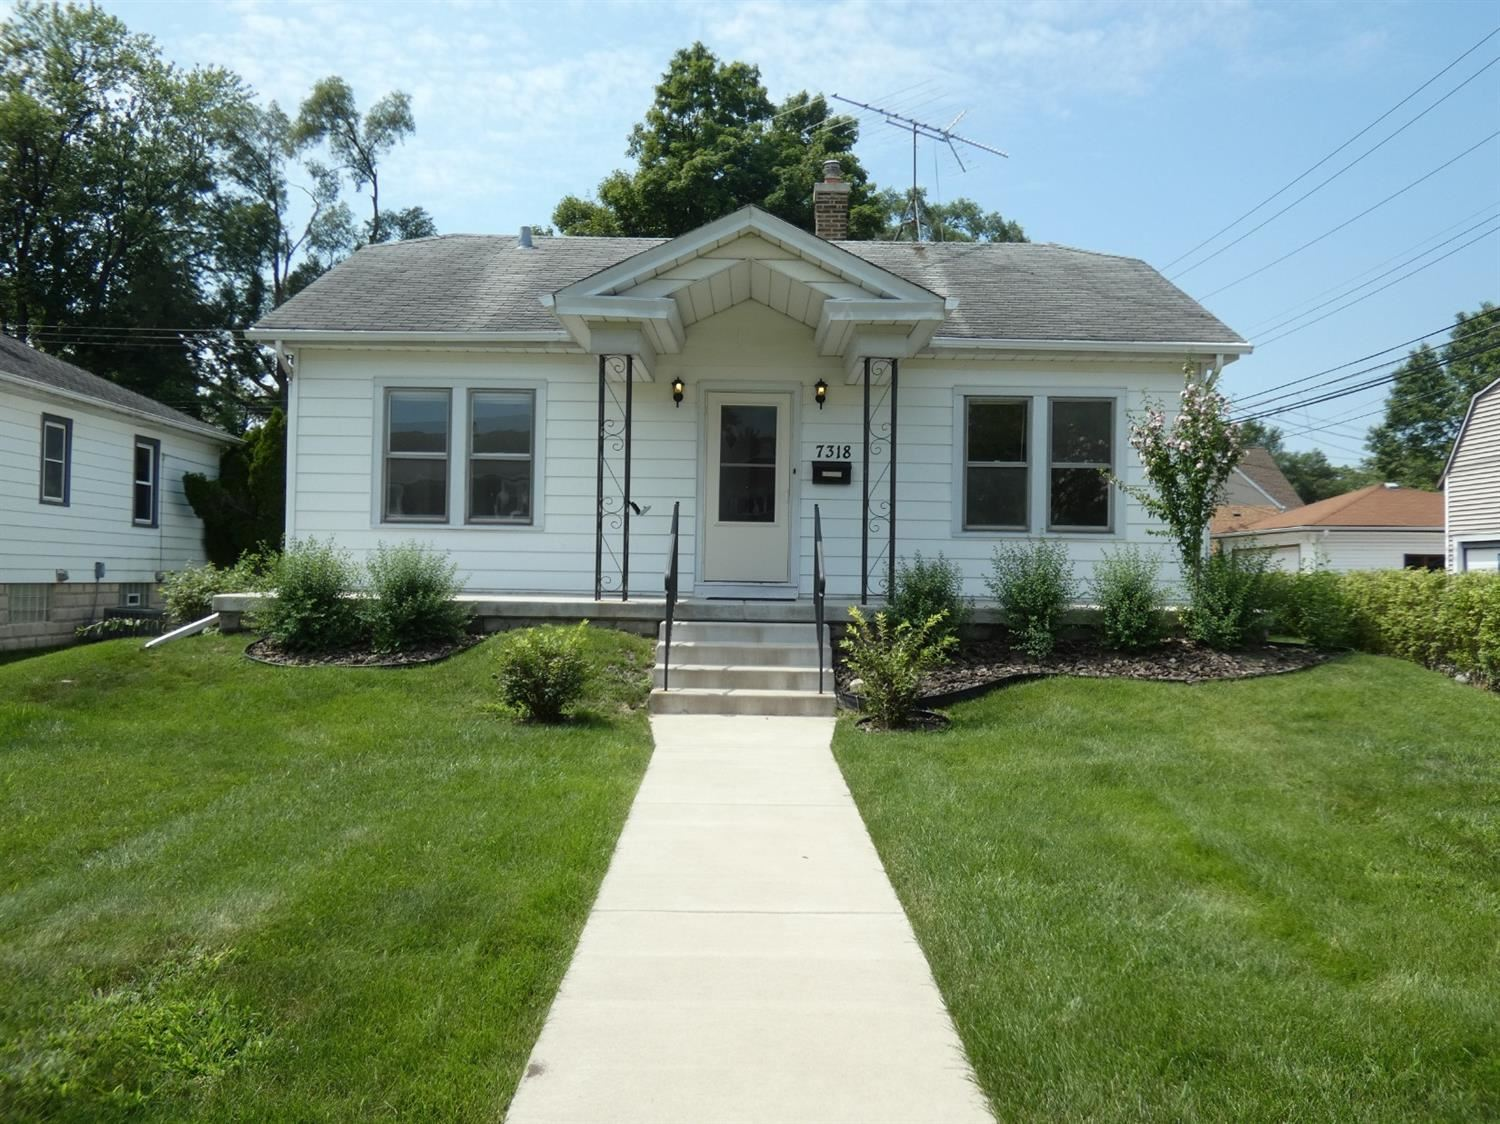 7318 Monroe Avenue, Hammond, IN 46324 - #: 479444